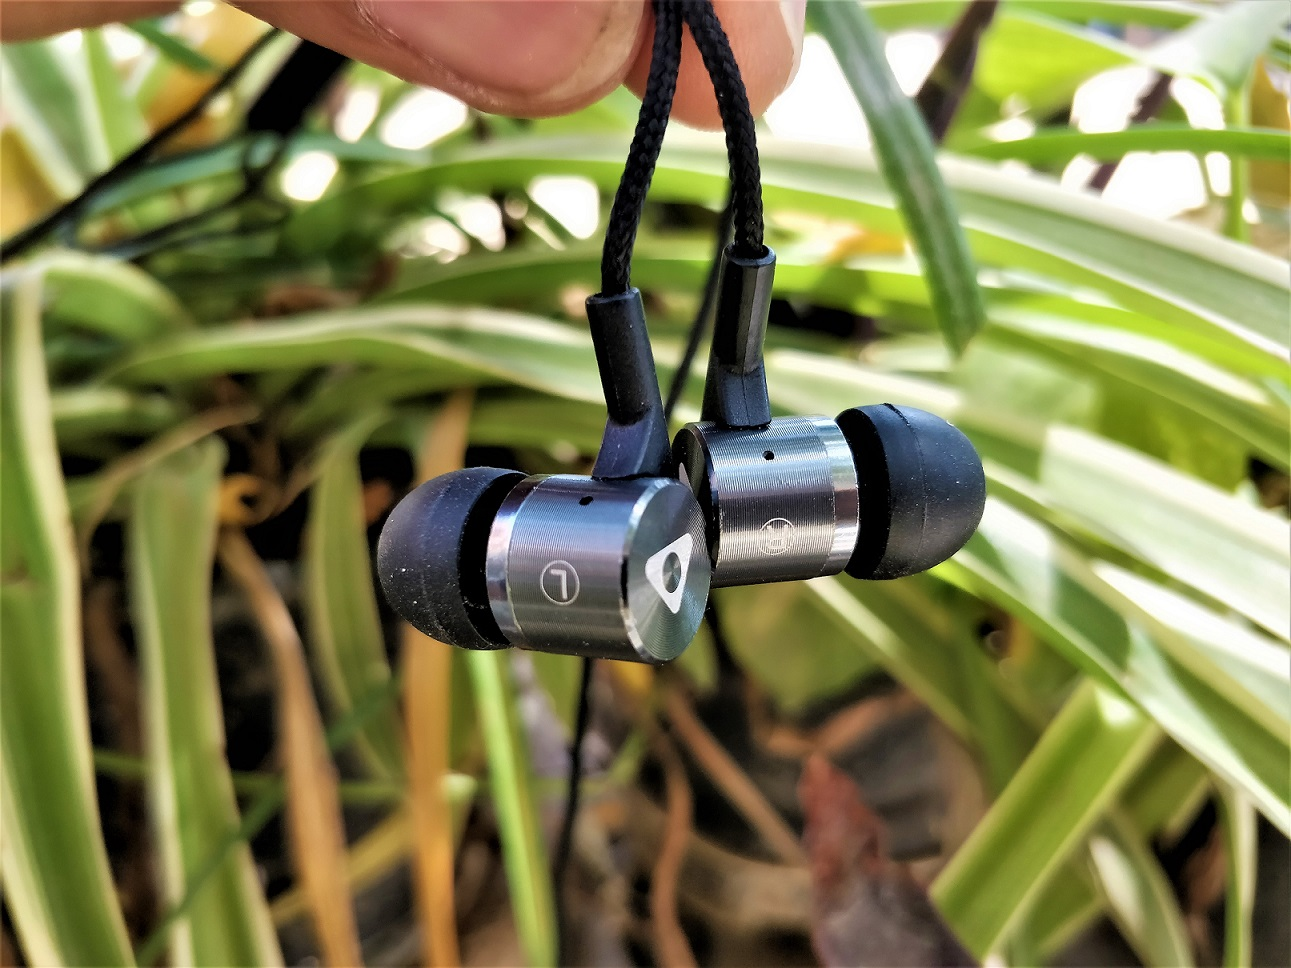 Stuffcool Bac in-Ear Wired Earphones Headphone Review 2